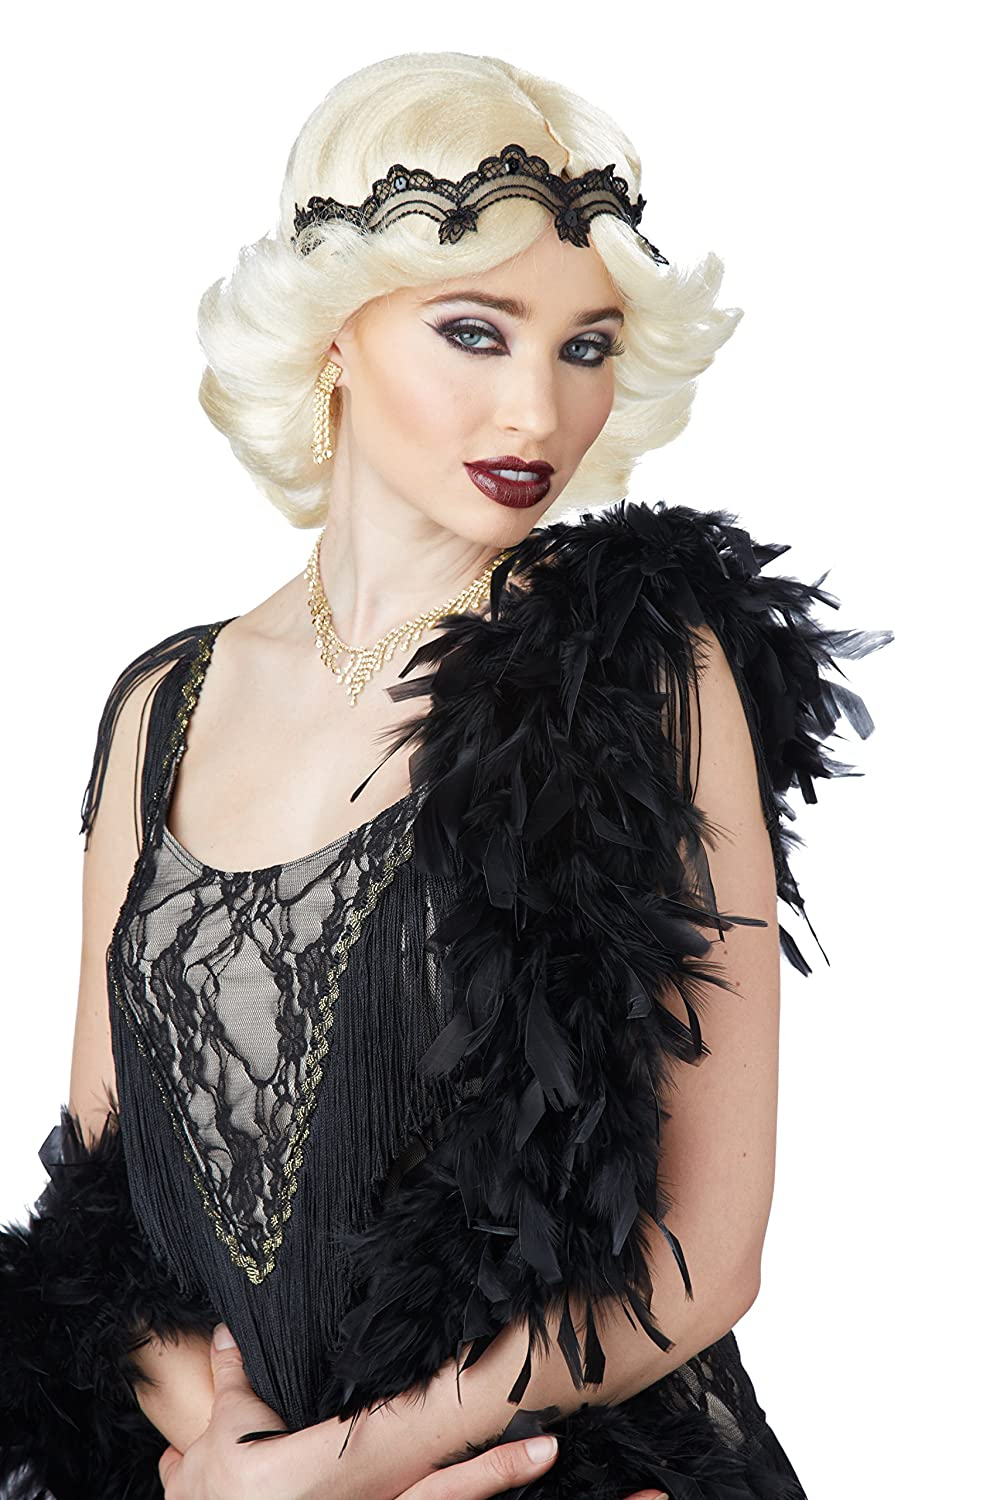 California Costumes Women's Blonde 20s Glitz and Glamour Wig and Headband One Size 70740